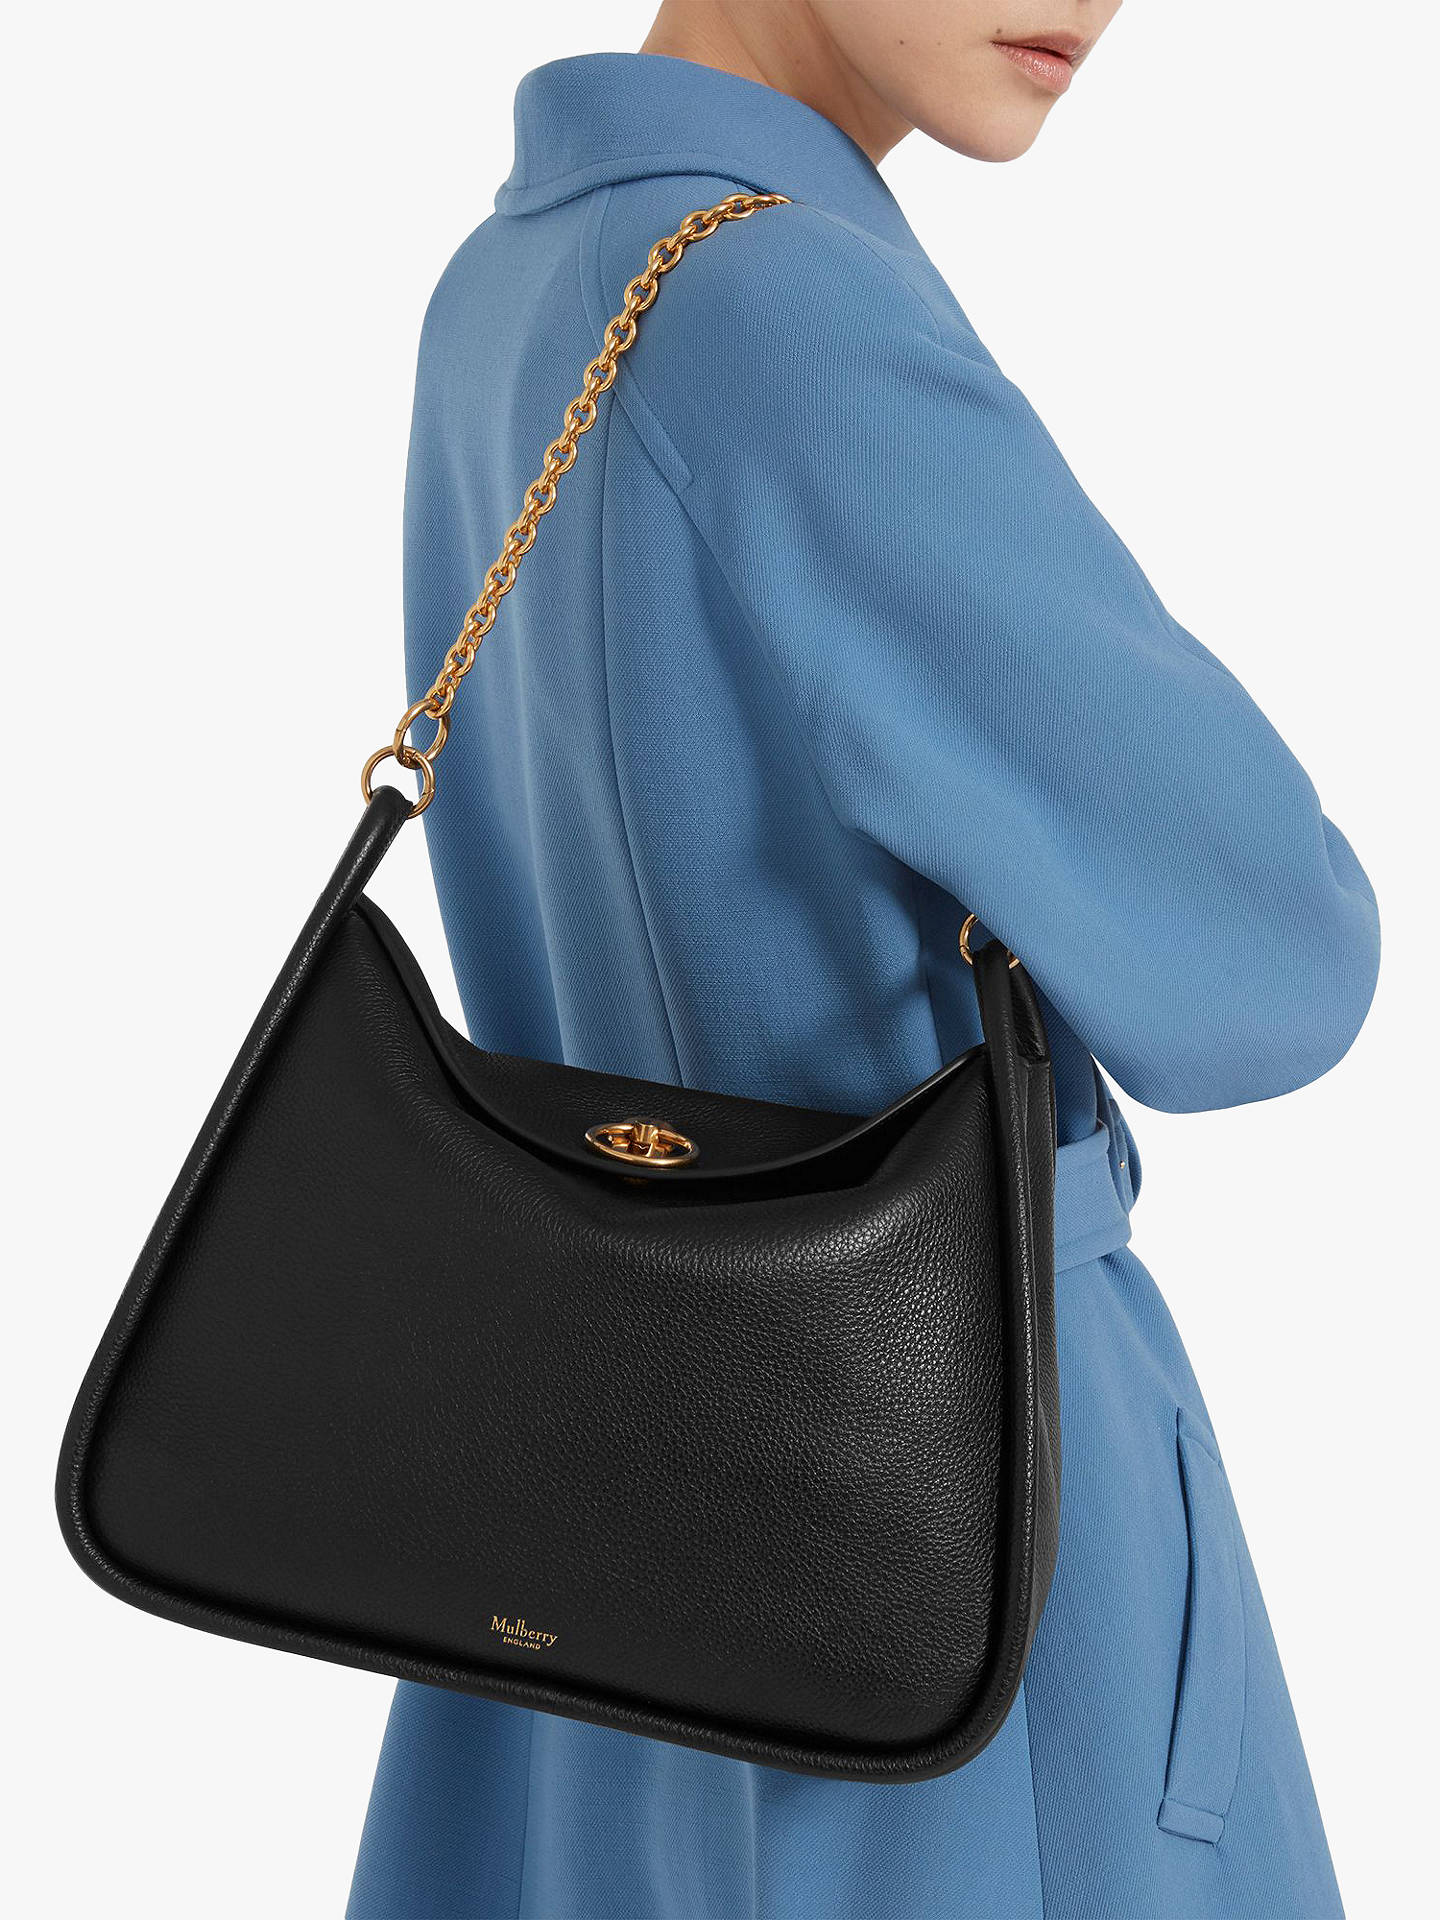 51e93ce30685 Mulberry Leighton Small Classic Grain Leather Shoulder Bag at John ...